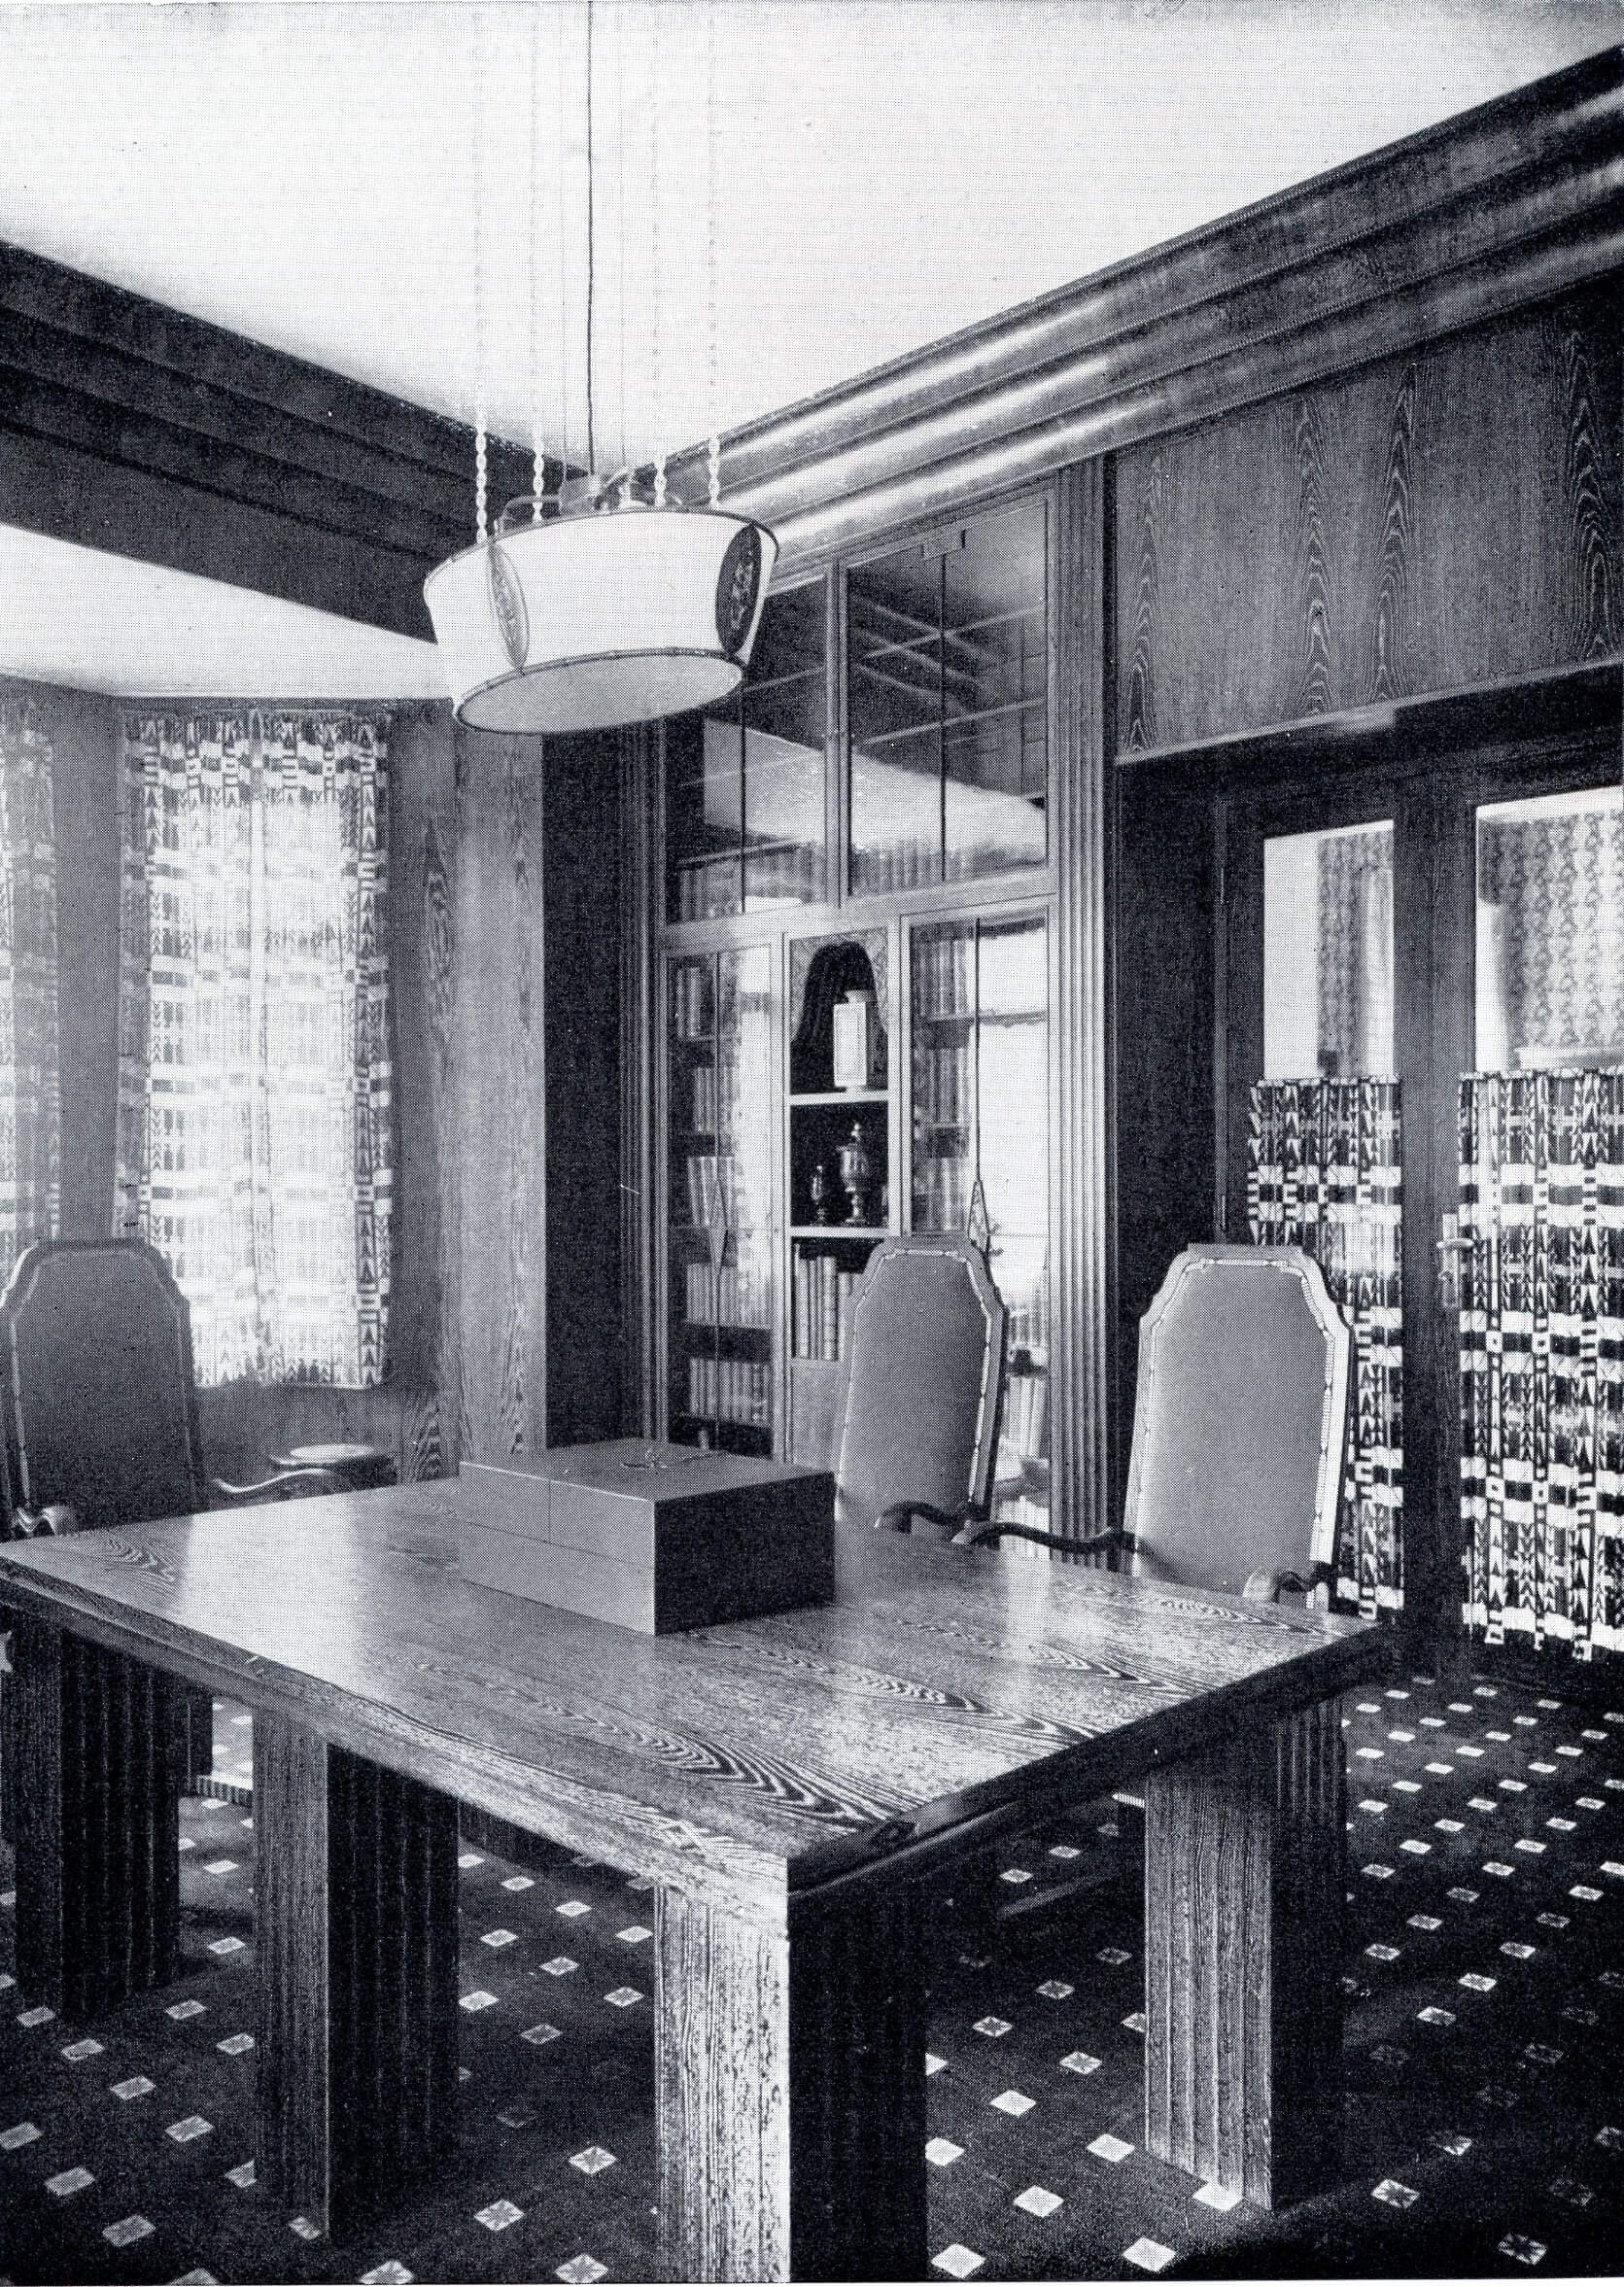 Otto Zuckerkandl's smoking room